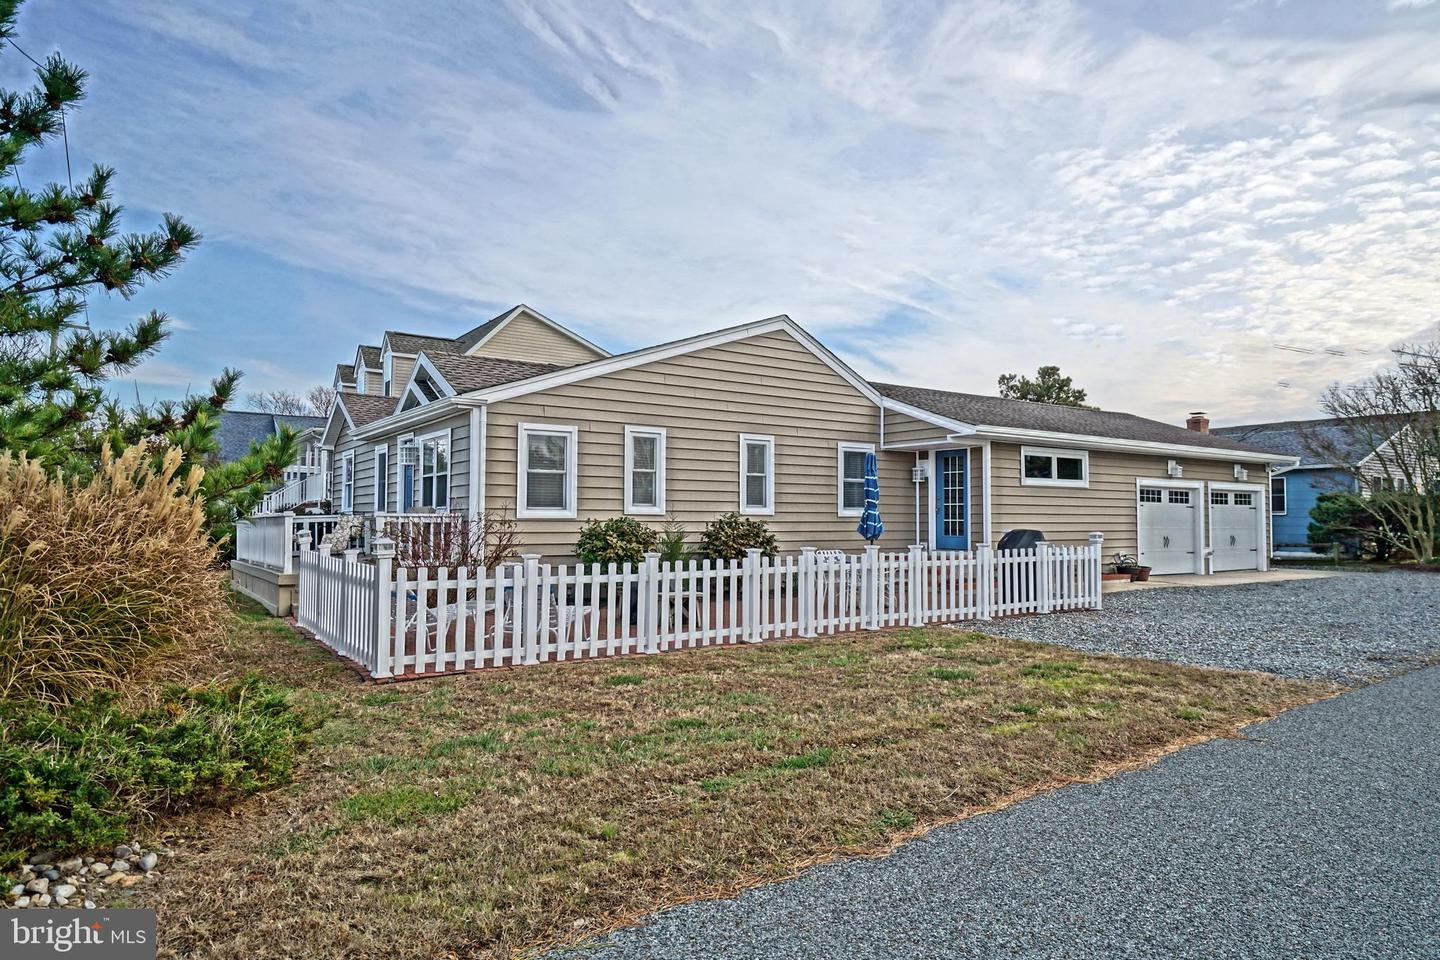 DESU150754-302164450256-2020-03-09-15-33-50 1701 Cedar St | Lewes, DE Real Estate For Sale | MLS# Desu150754  - Lee Ann Group